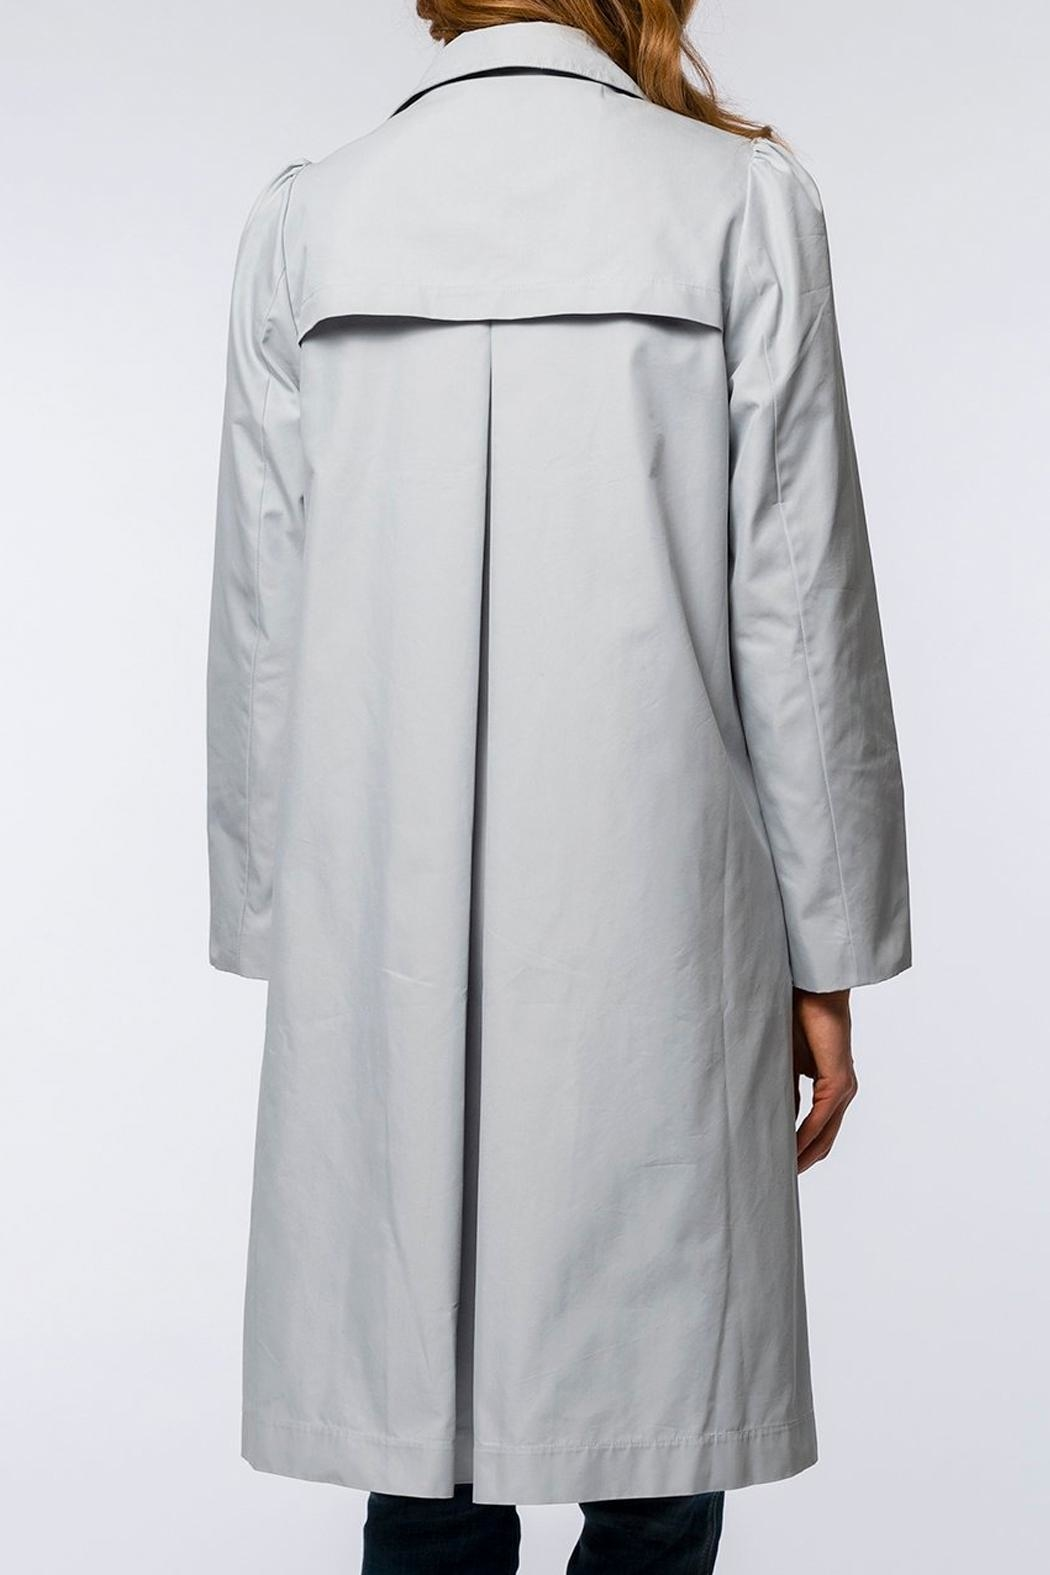 Tyler Boe Tasha Water-Repellent Trench-Coat - Front Full Image